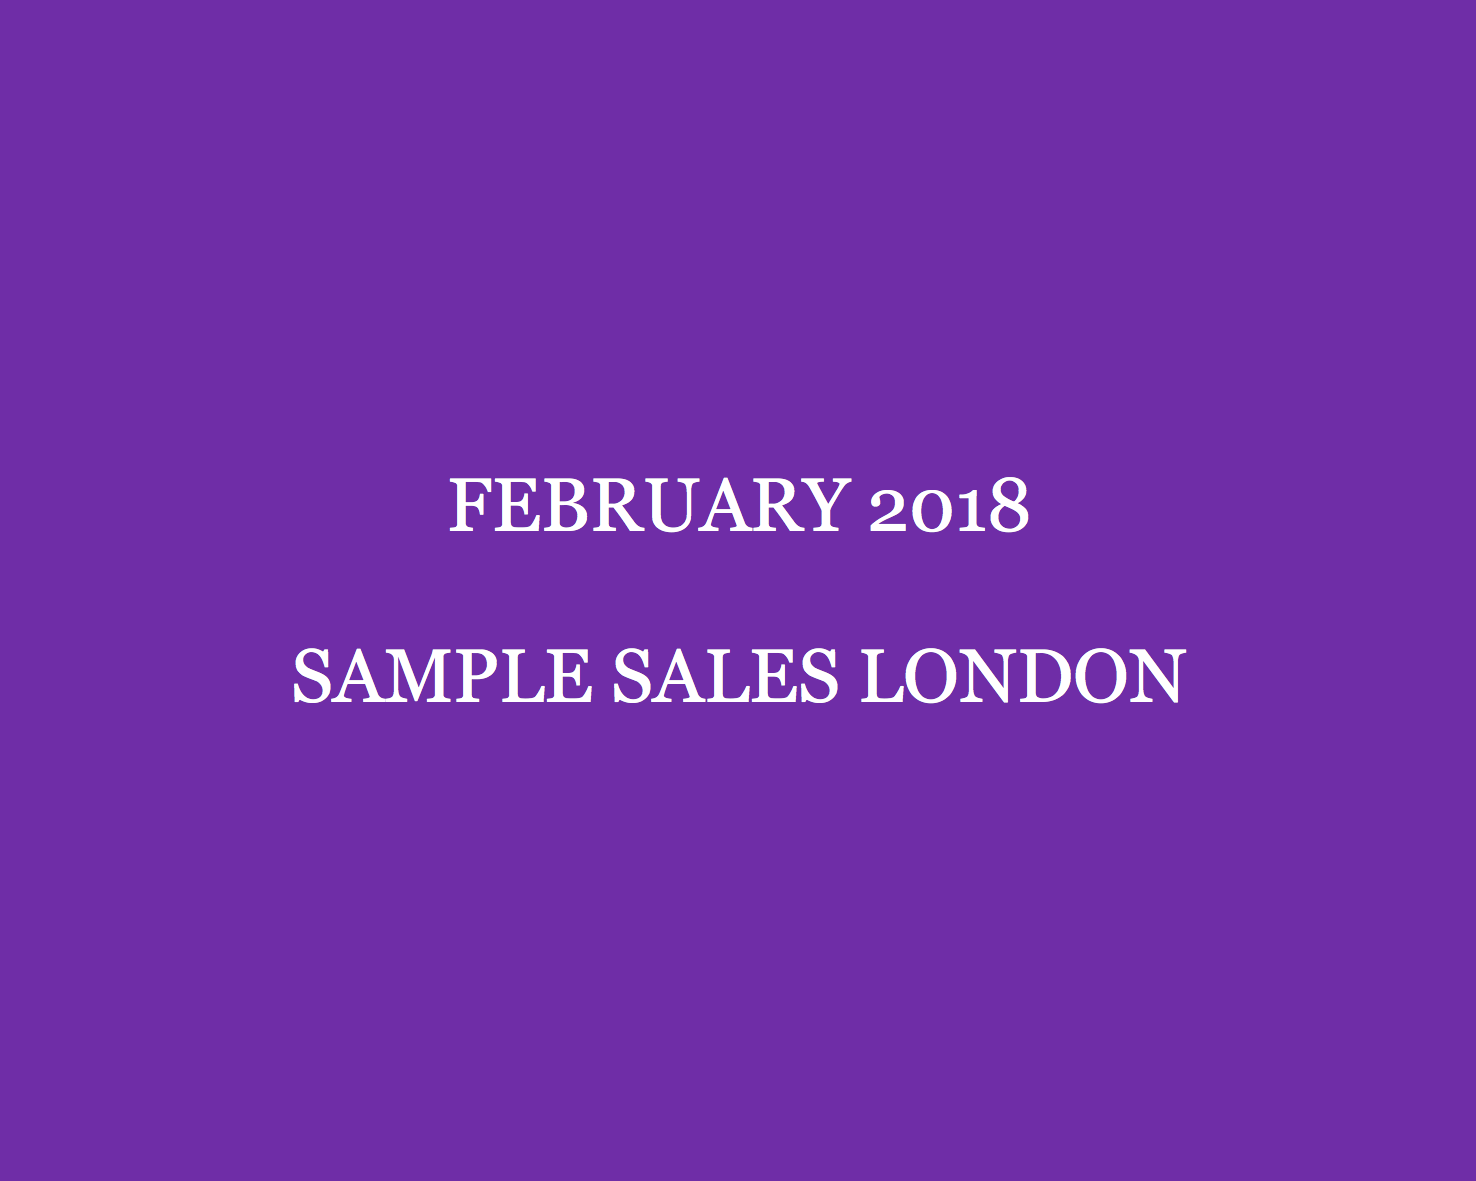 e363ae6466 Make sure to jot down the dates of the February London sample sales! With La  Perla